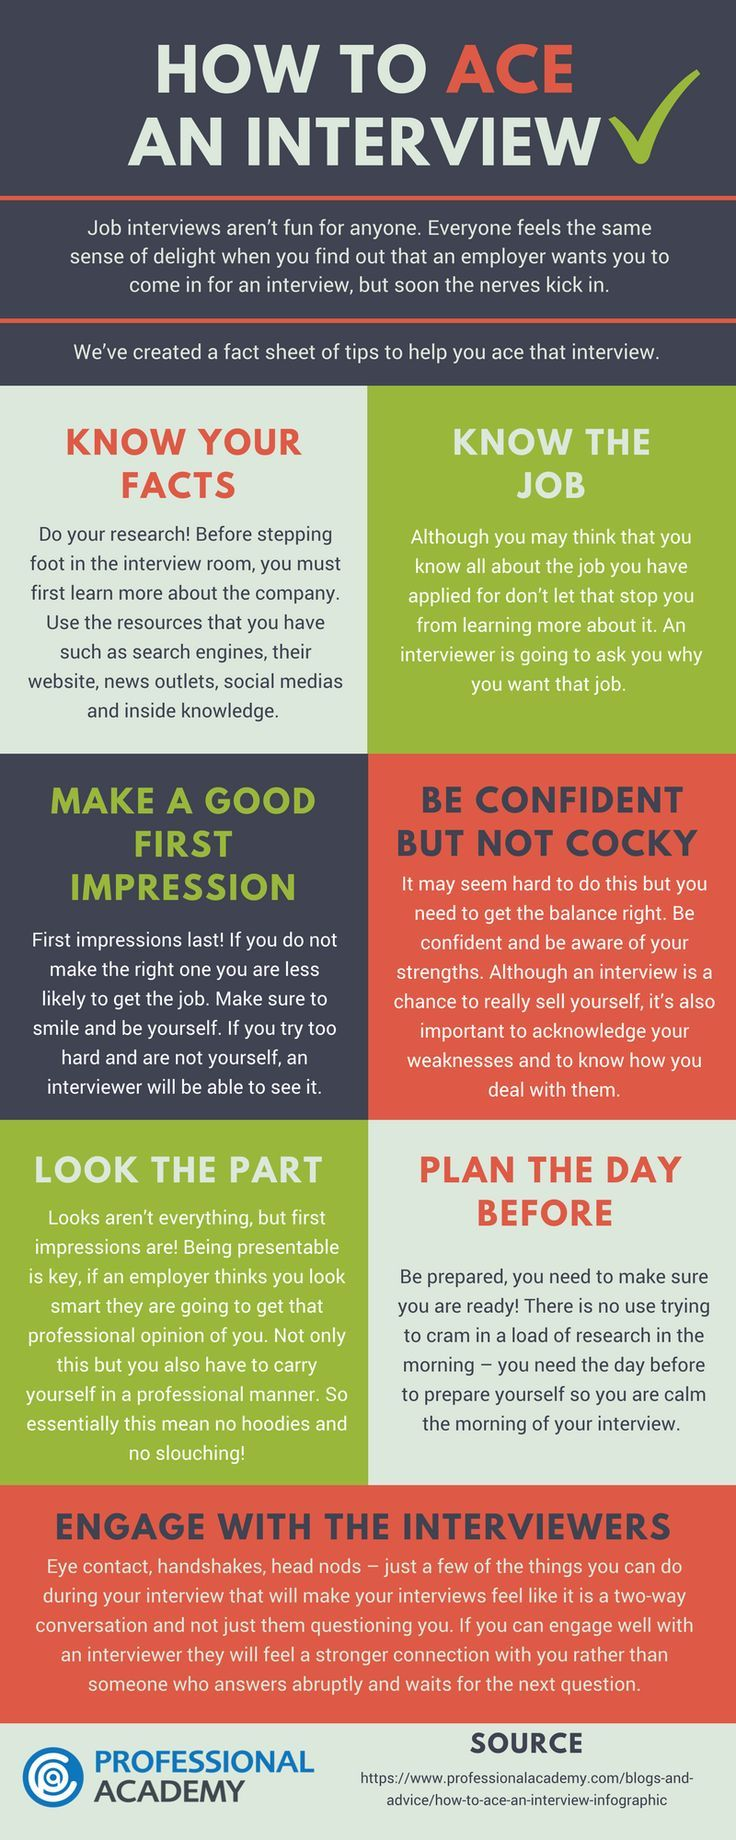 How to ace a job interview by professional academy jobs how to ace a job interview by professional academy solutioingenieria Choice Image